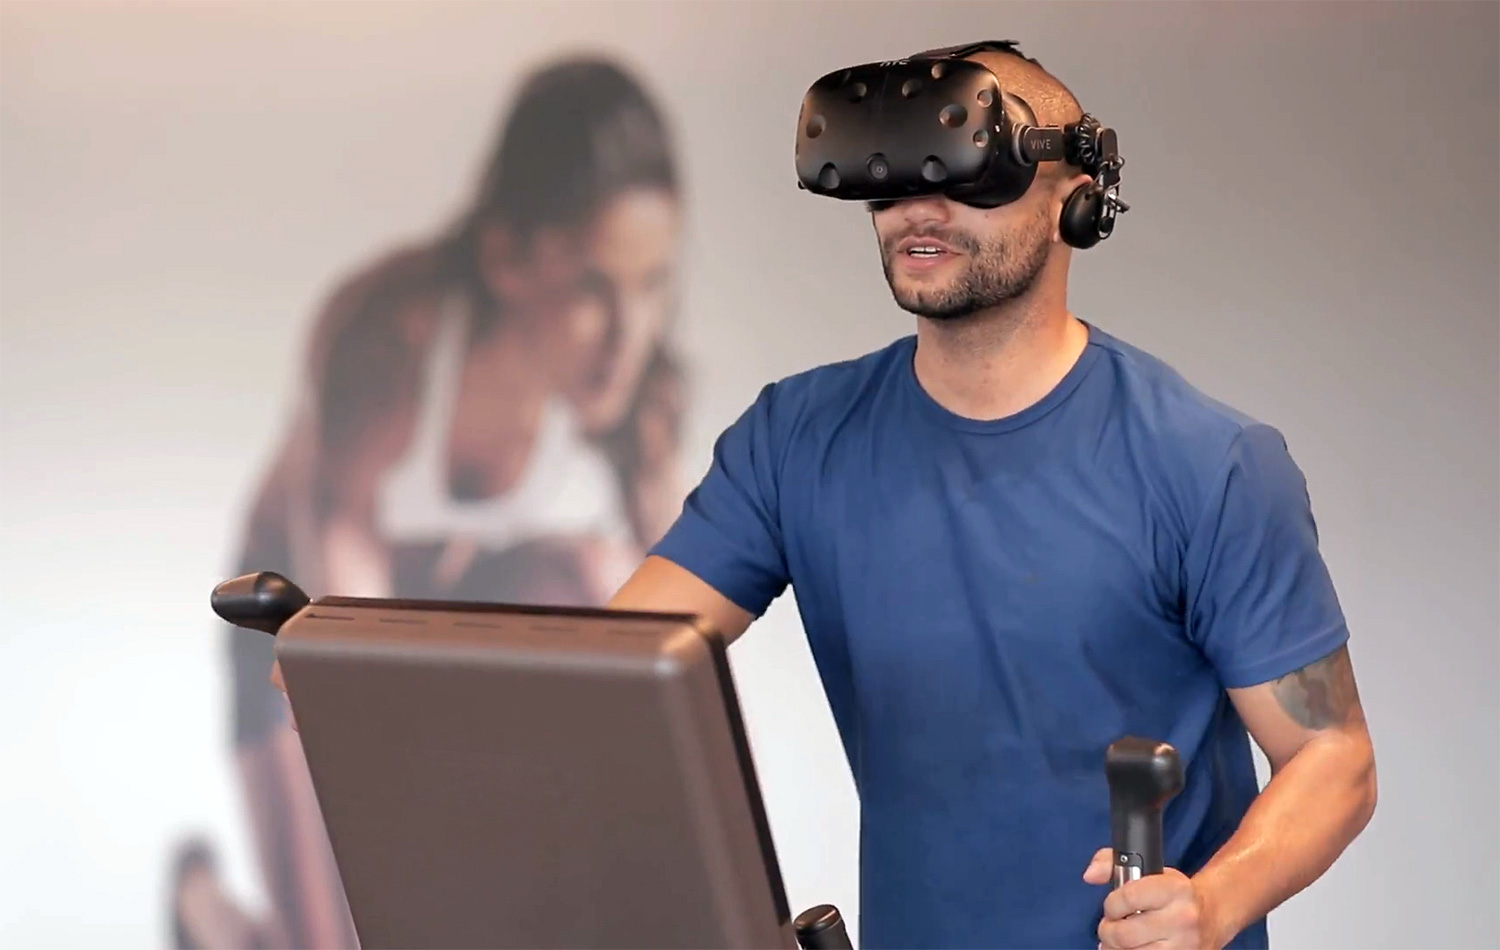 VR Can Remove Body Consciousness From Gyms